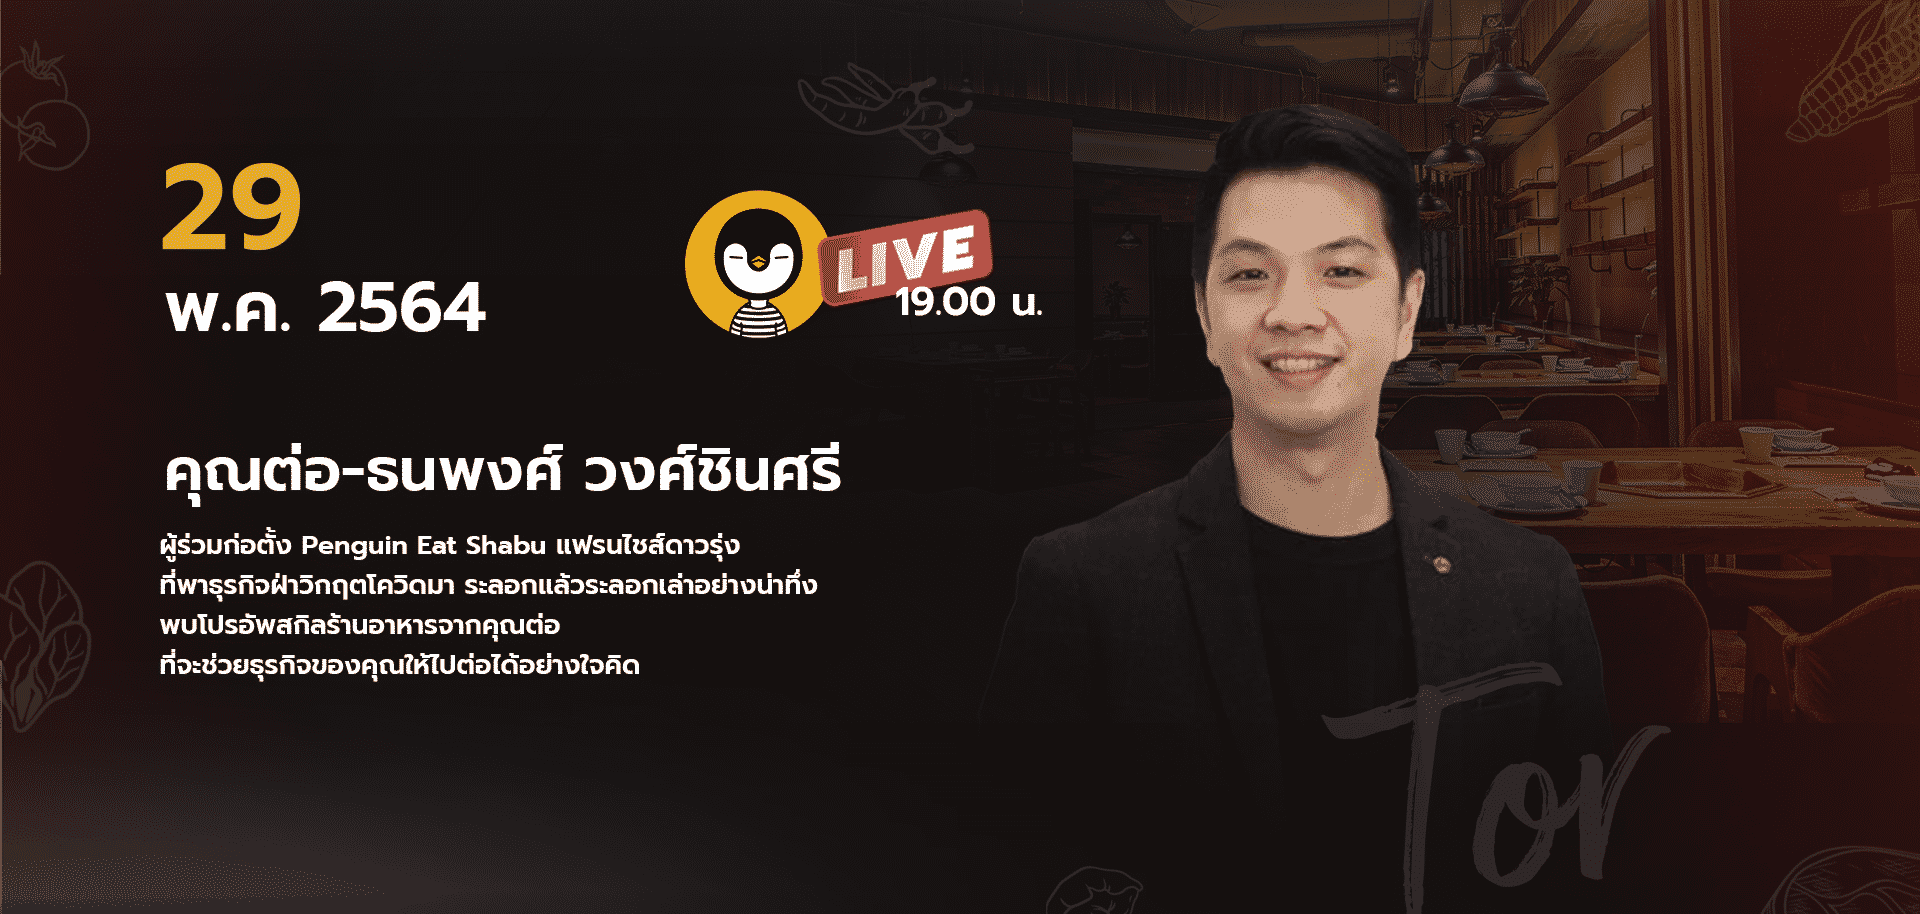 Landing page Kitchenmall Live 2